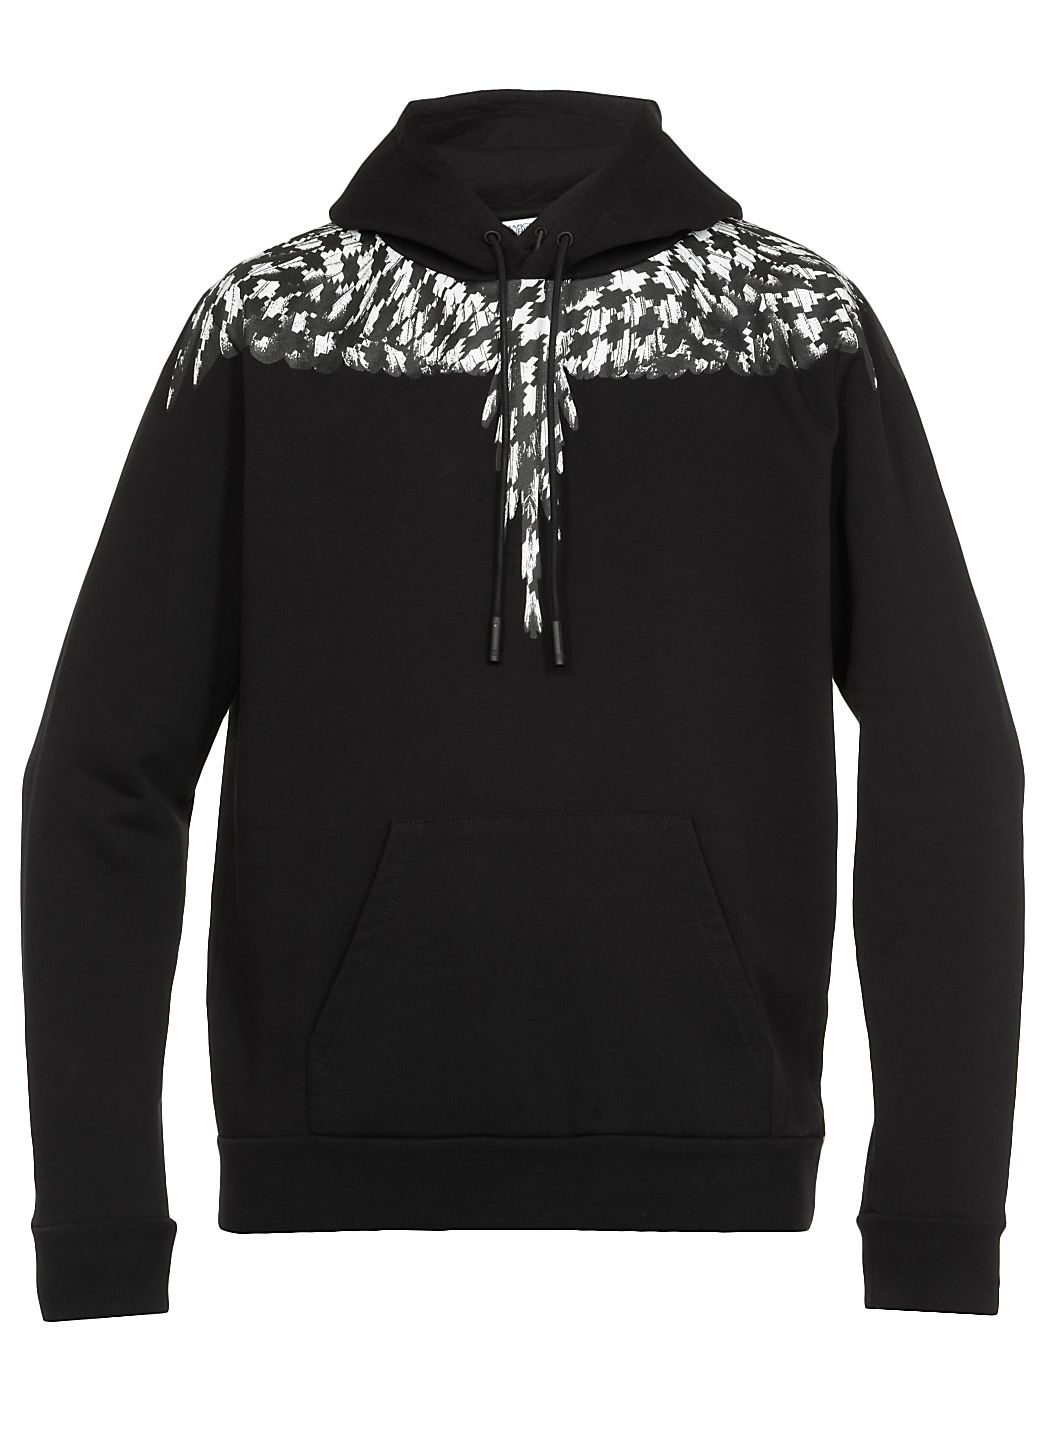 Cross piede de poule wings sweatshirt